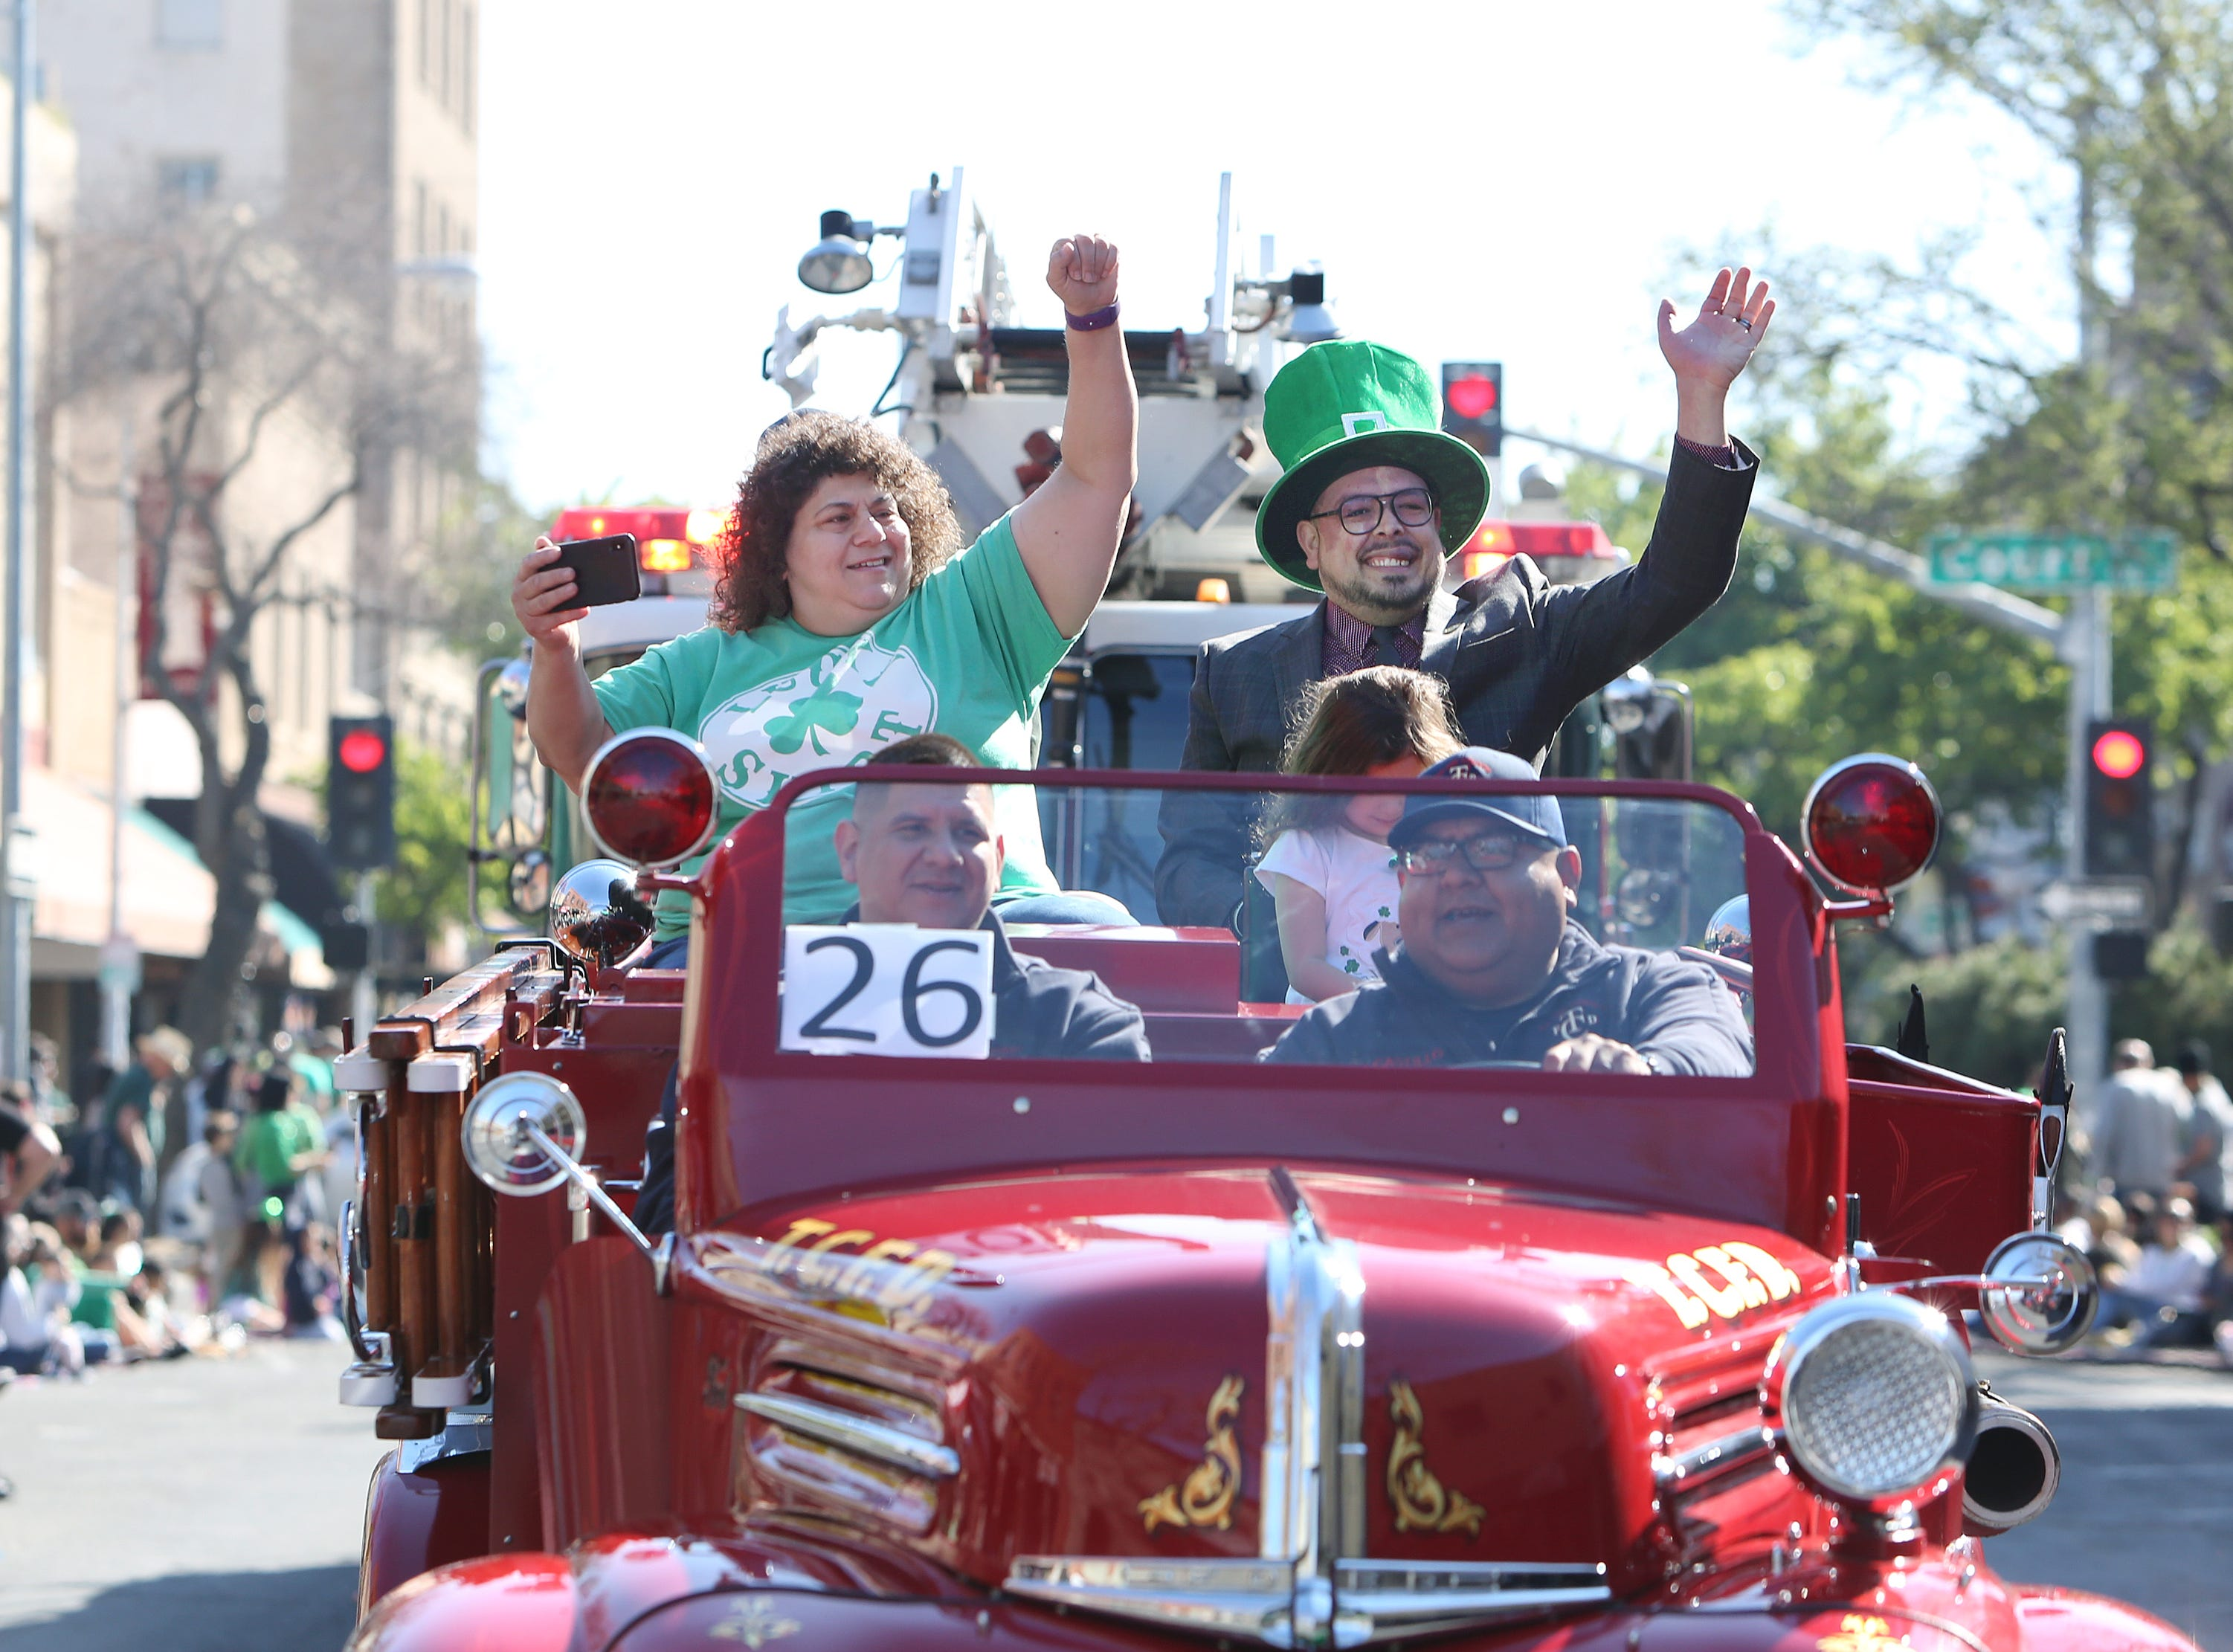 Supervisors Amy Shuklian and Eddie Valero wave to the crowds at this year's St. Patrick's Day parade rolling through Main Street Saturday, March 16, 2019 in Visalia, Calif.